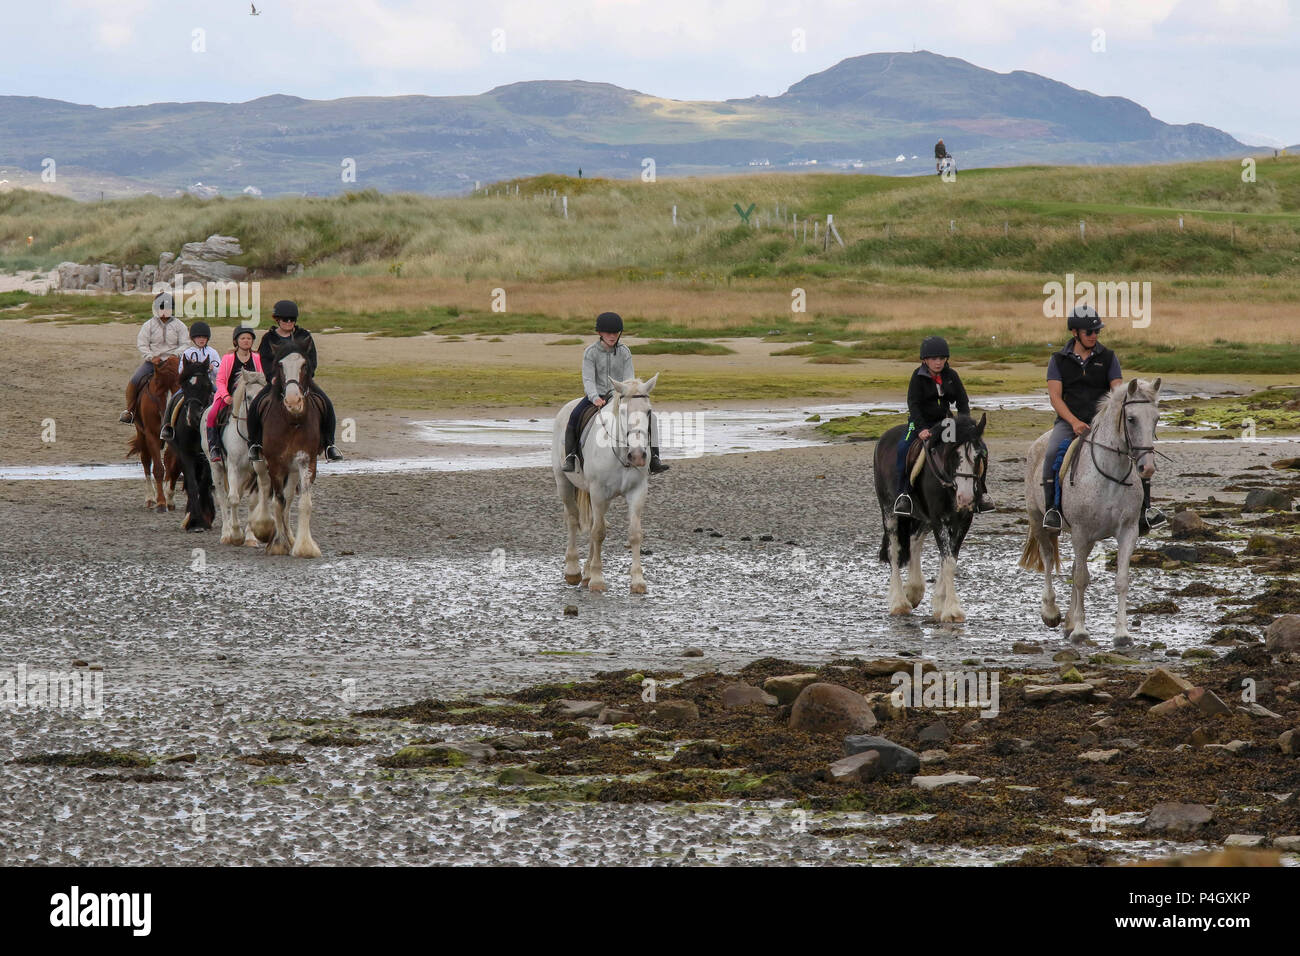 Horse riding and golf at Dunfanaghy County Donegal Ireland - Stock Image